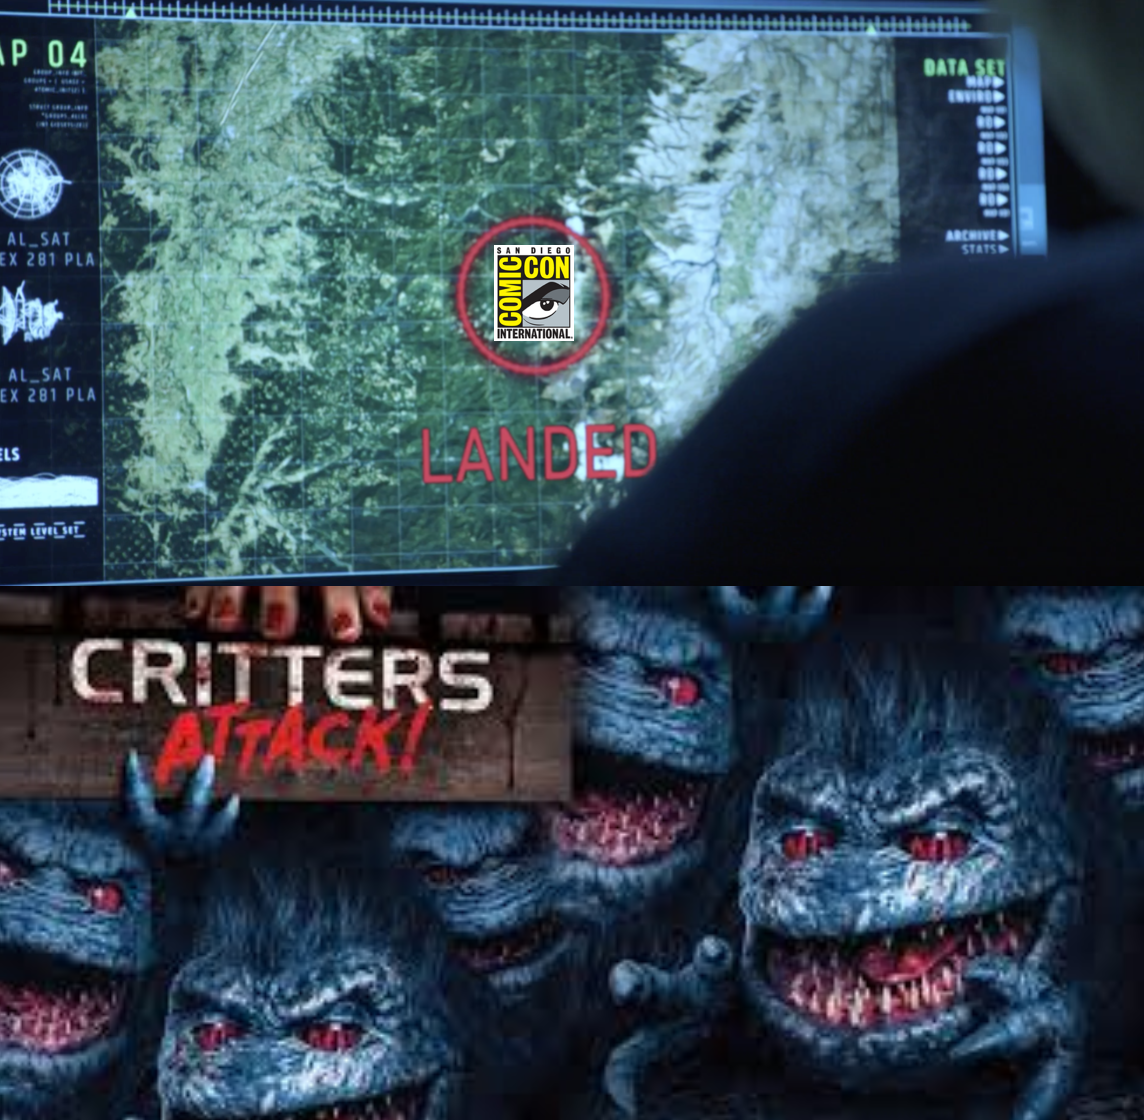 CRITTERS ATTACK: This Time SDCC is On the Menu!